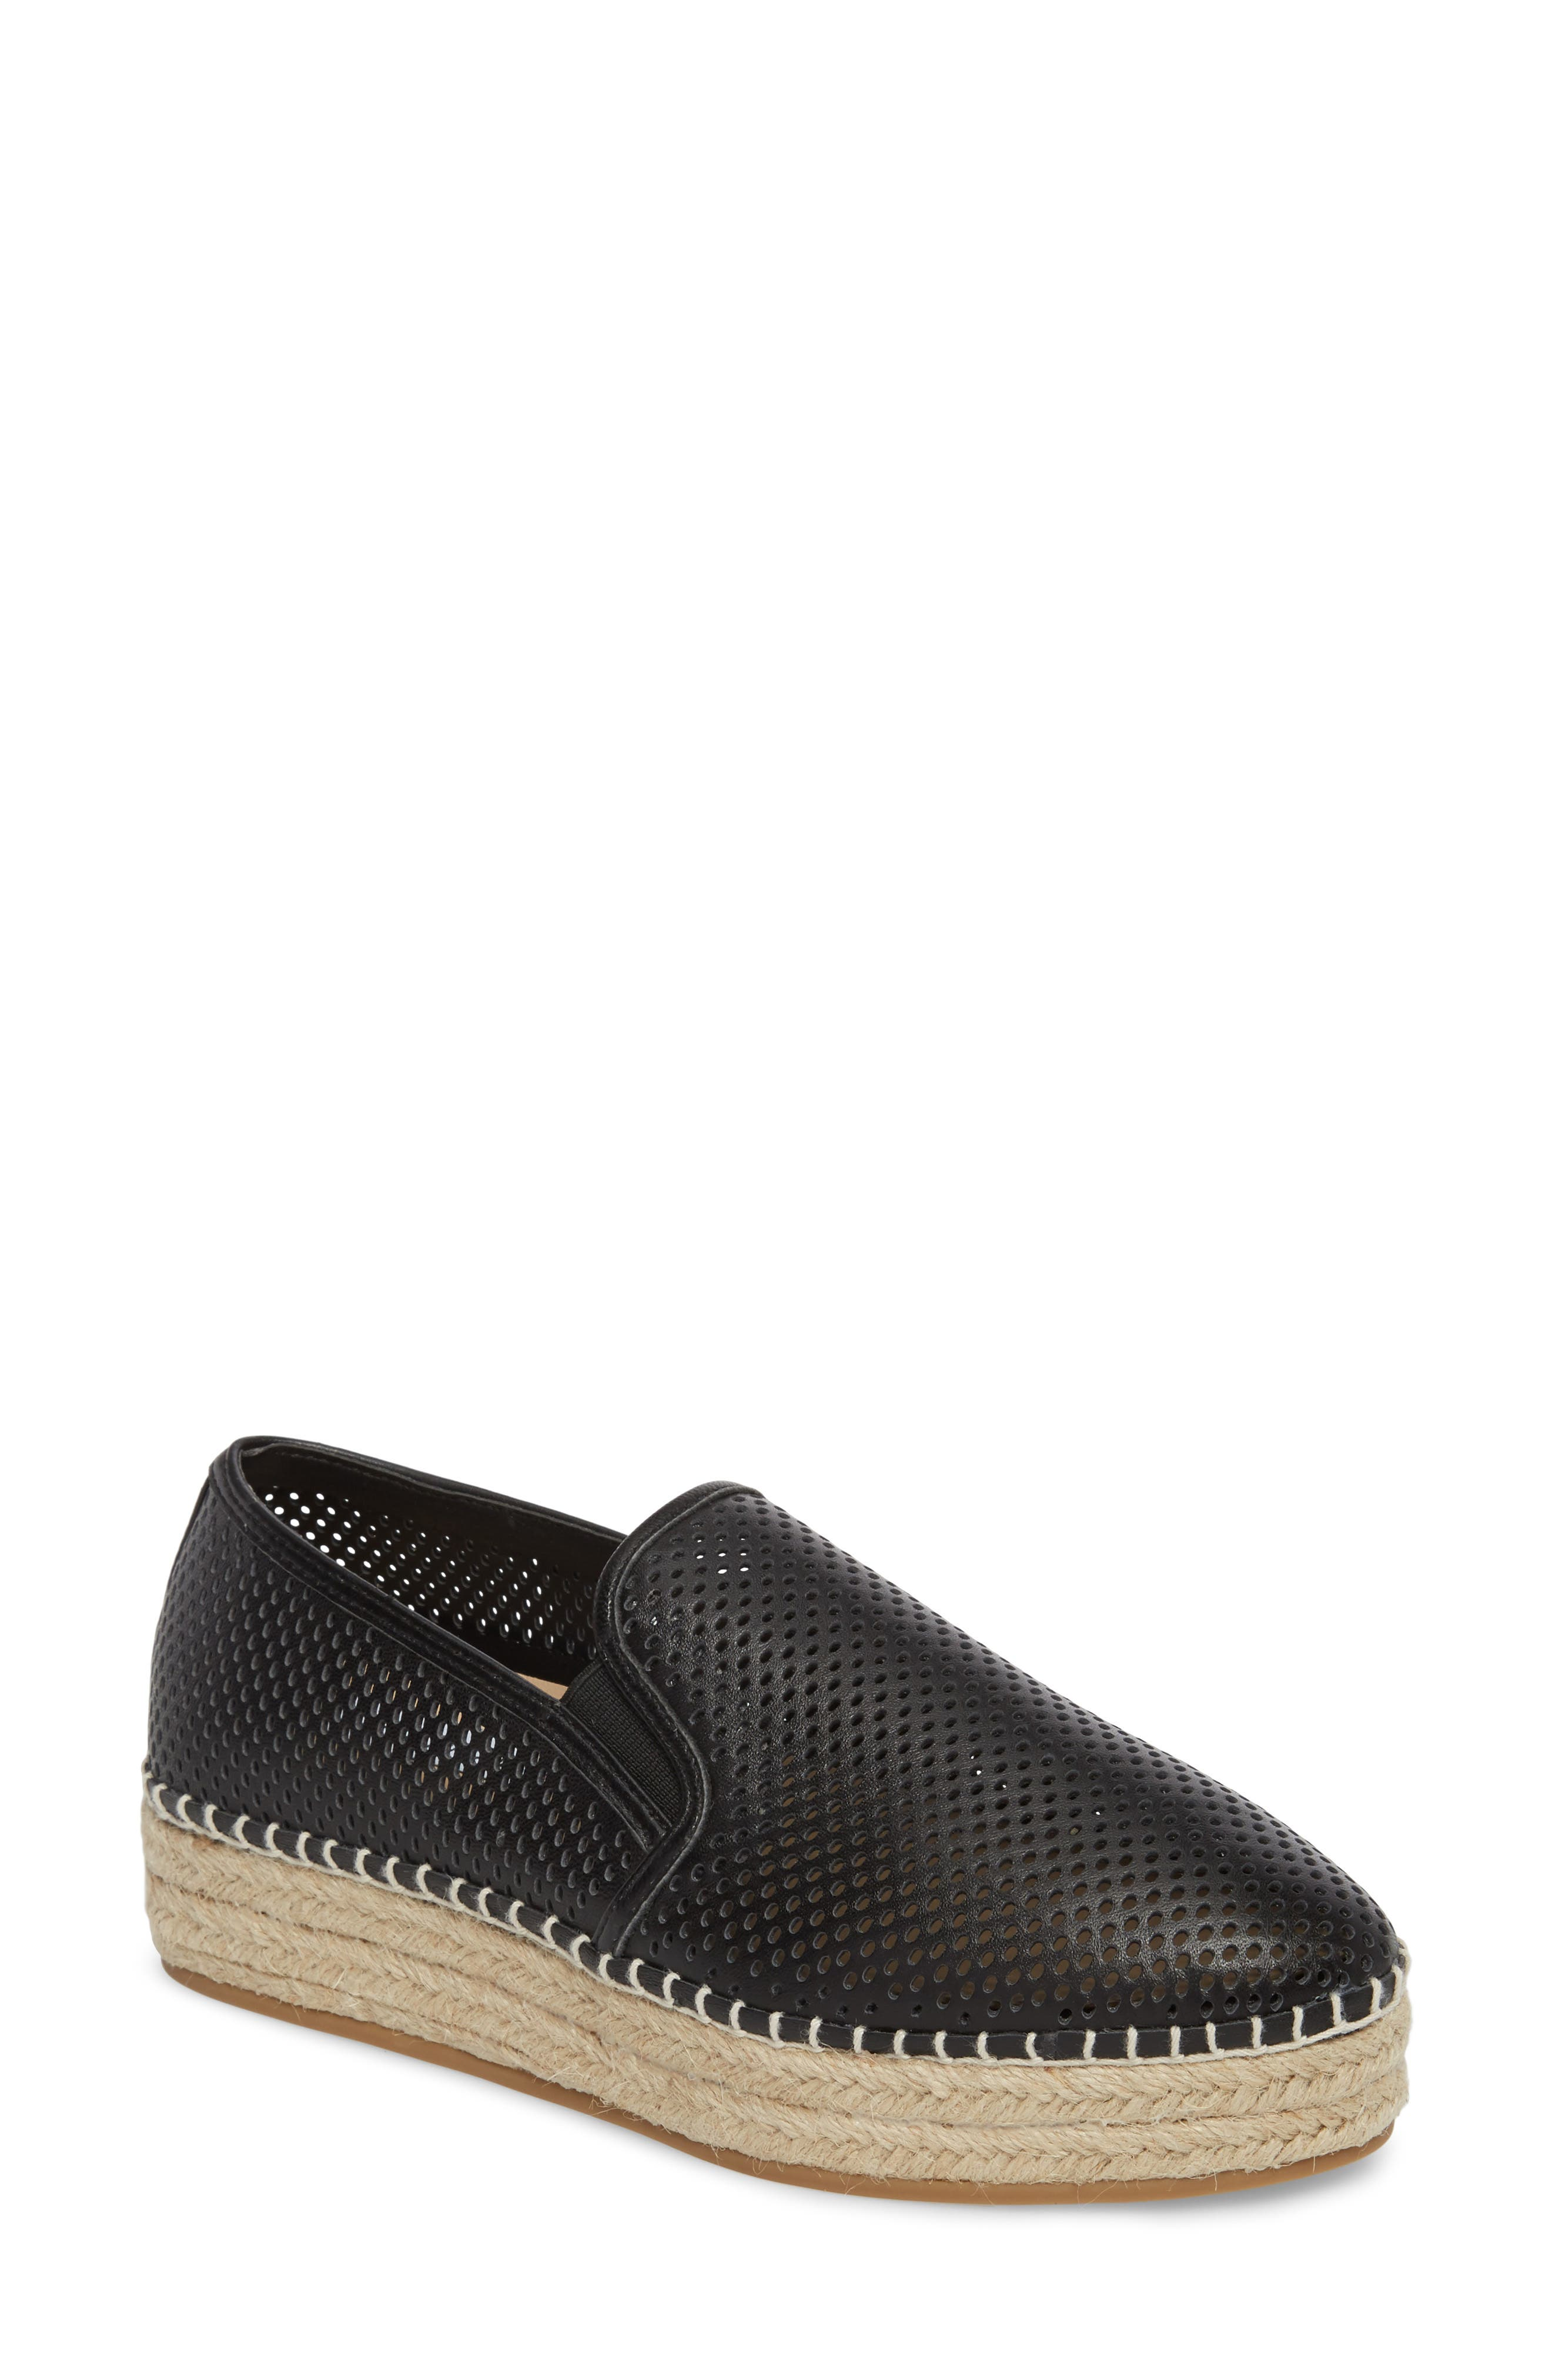 Wright Perforated Platform Espadrille,                             Main thumbnail 1, color,                             001